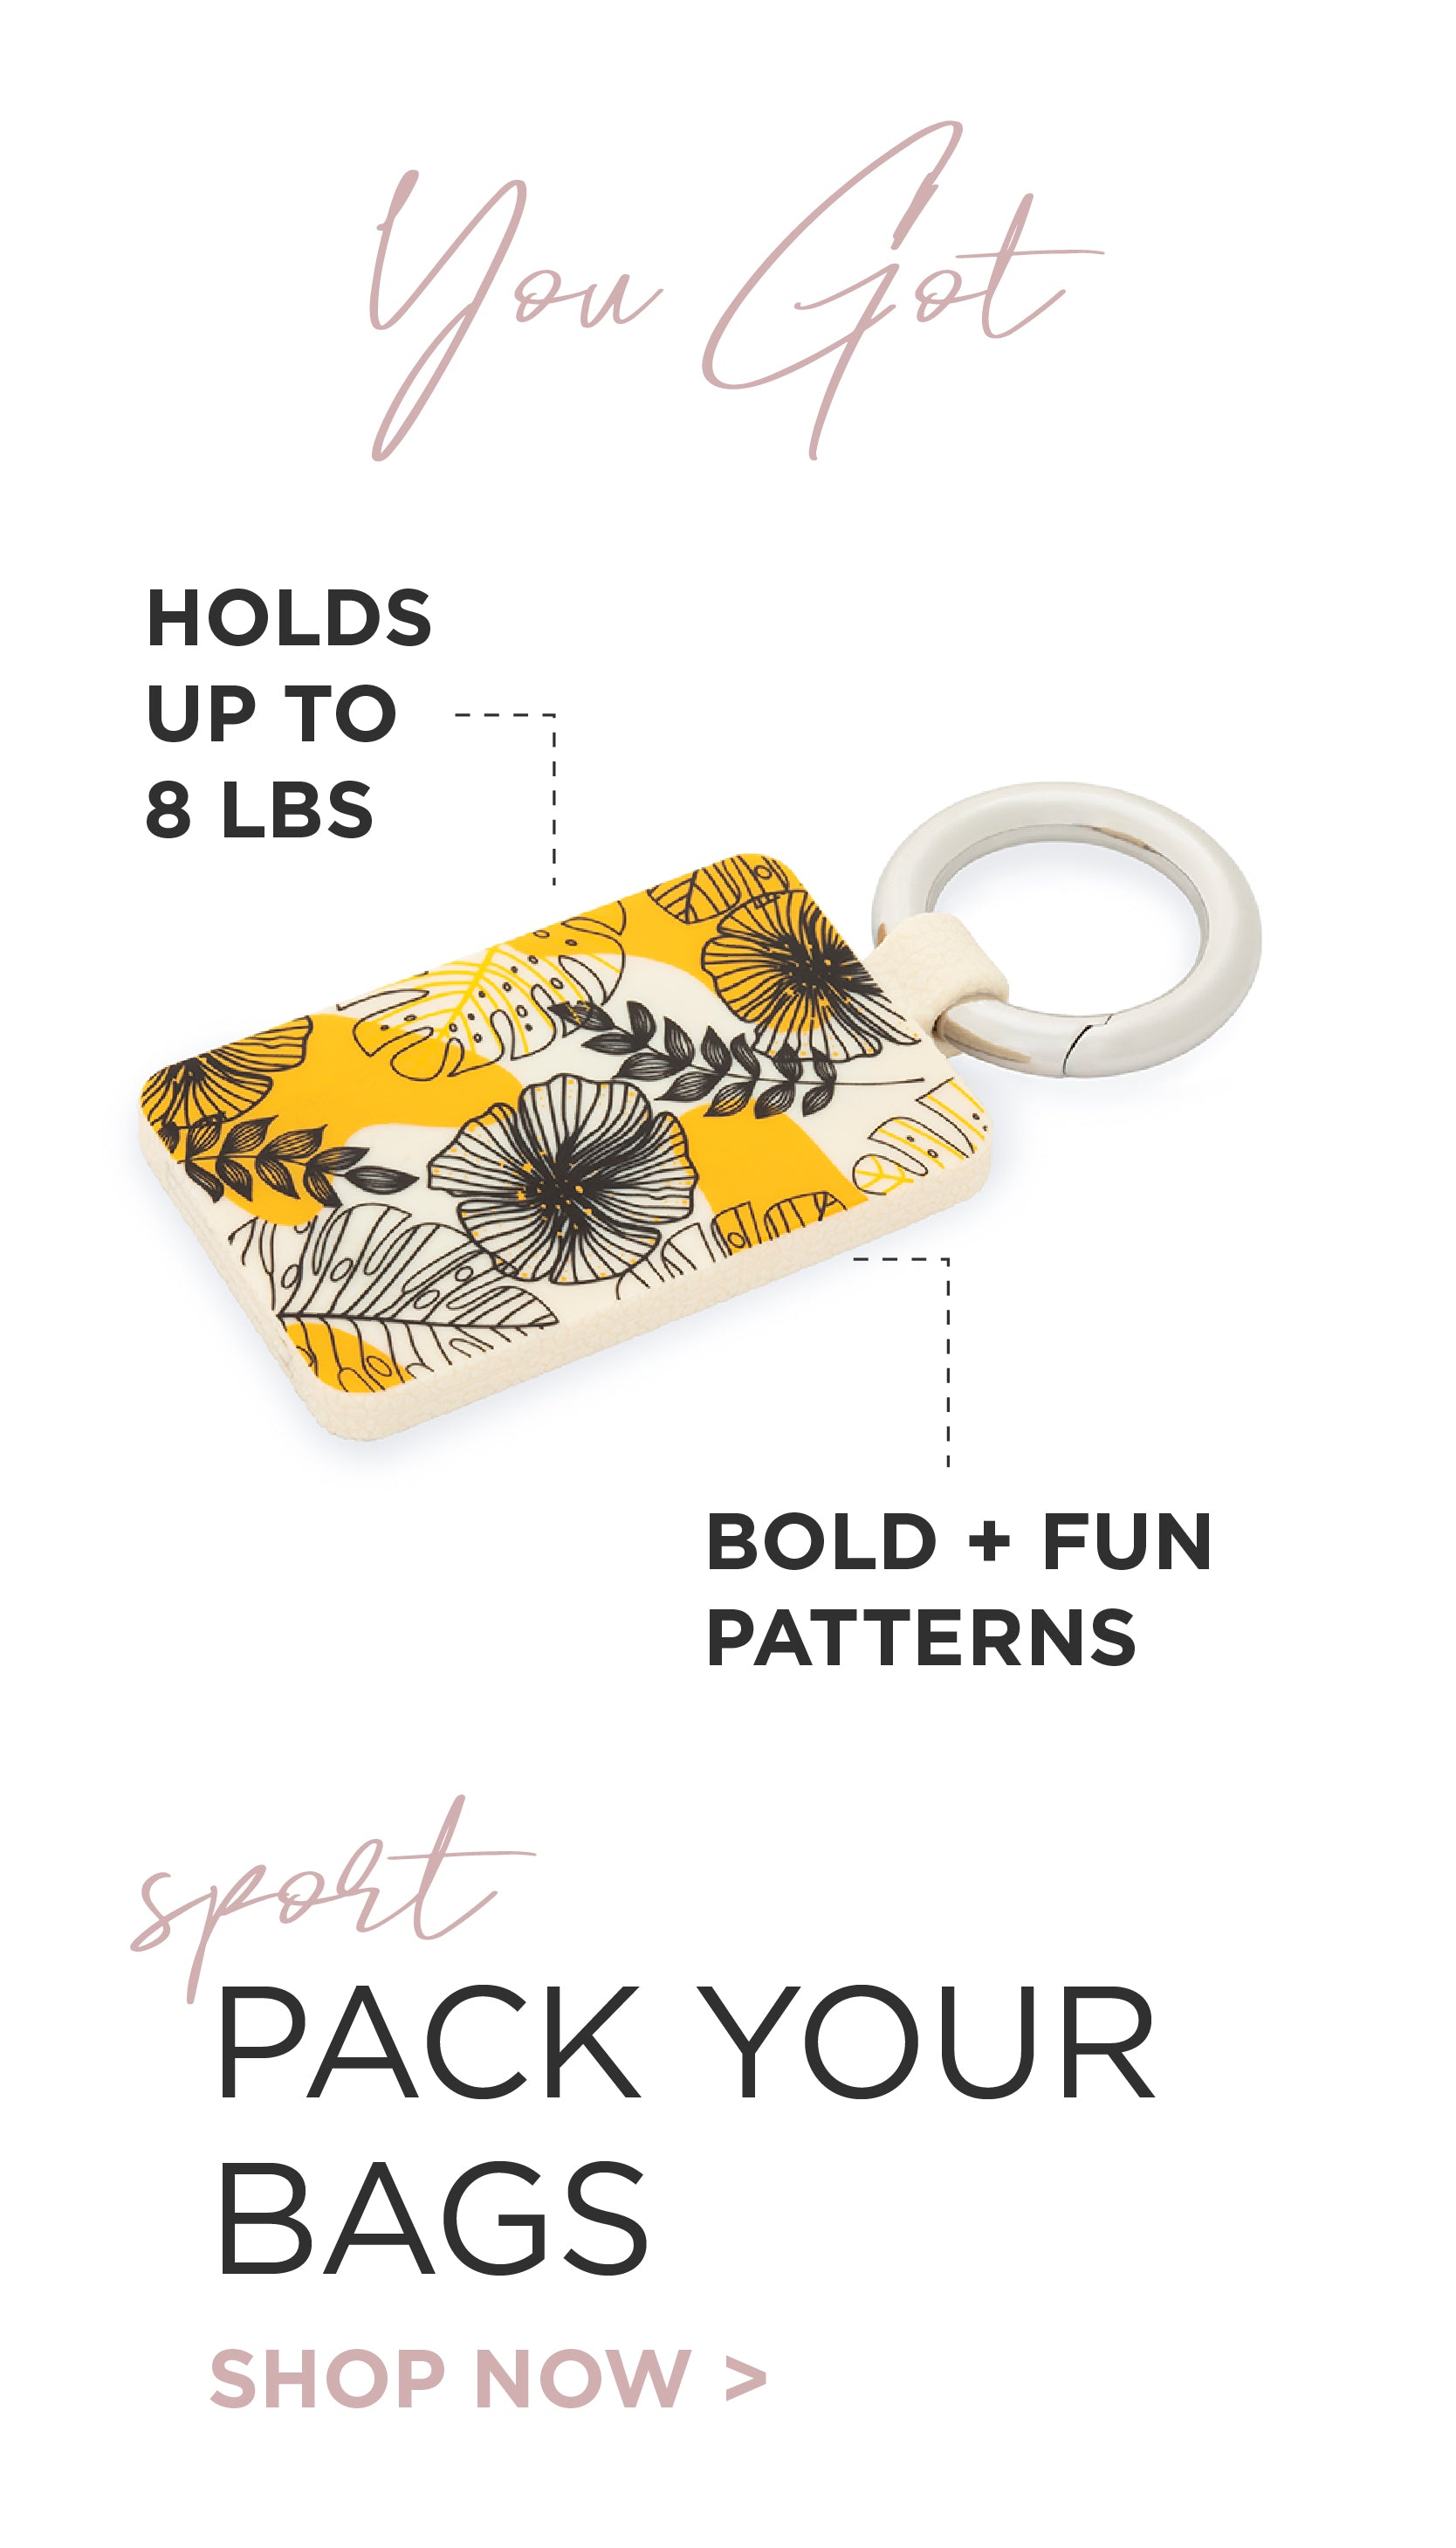 You Got: Pack Your Bags the bold & fun bagnet the magnetic bag holder